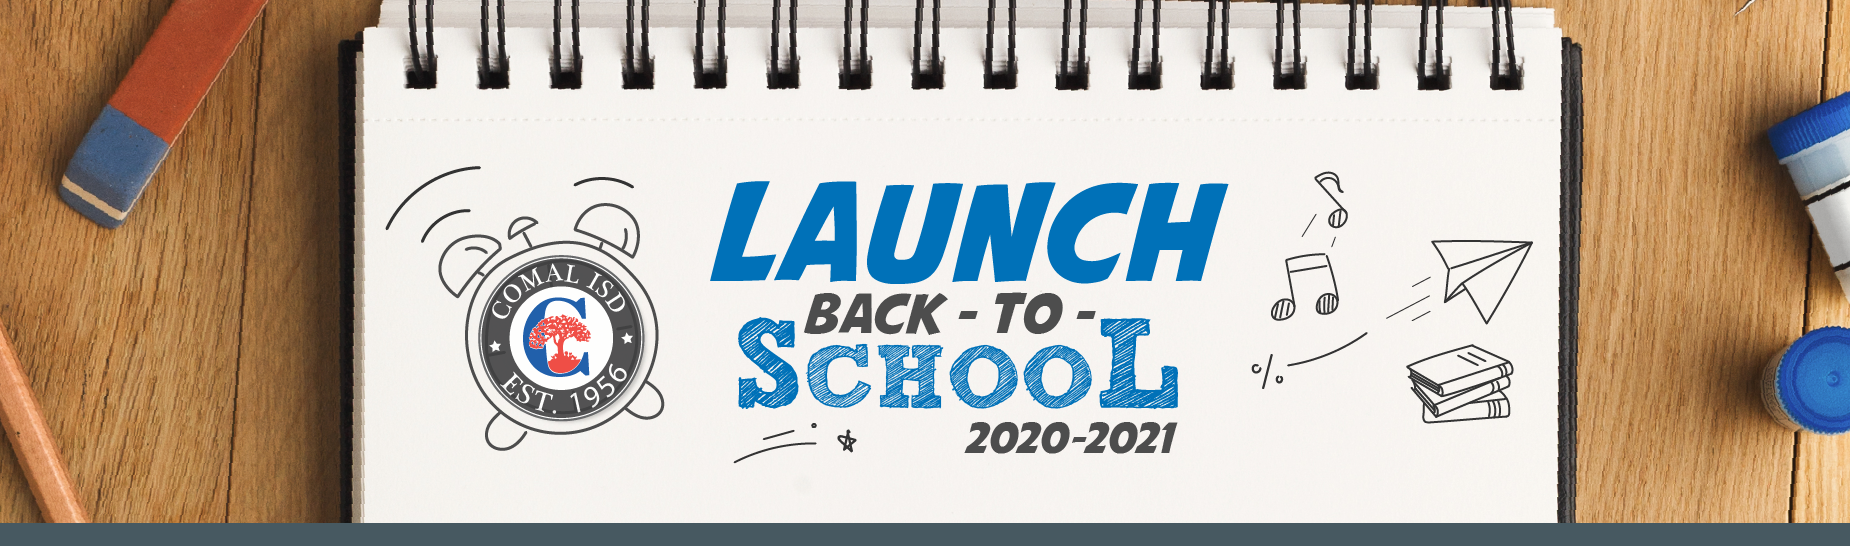 Launch Back-to-School Banner